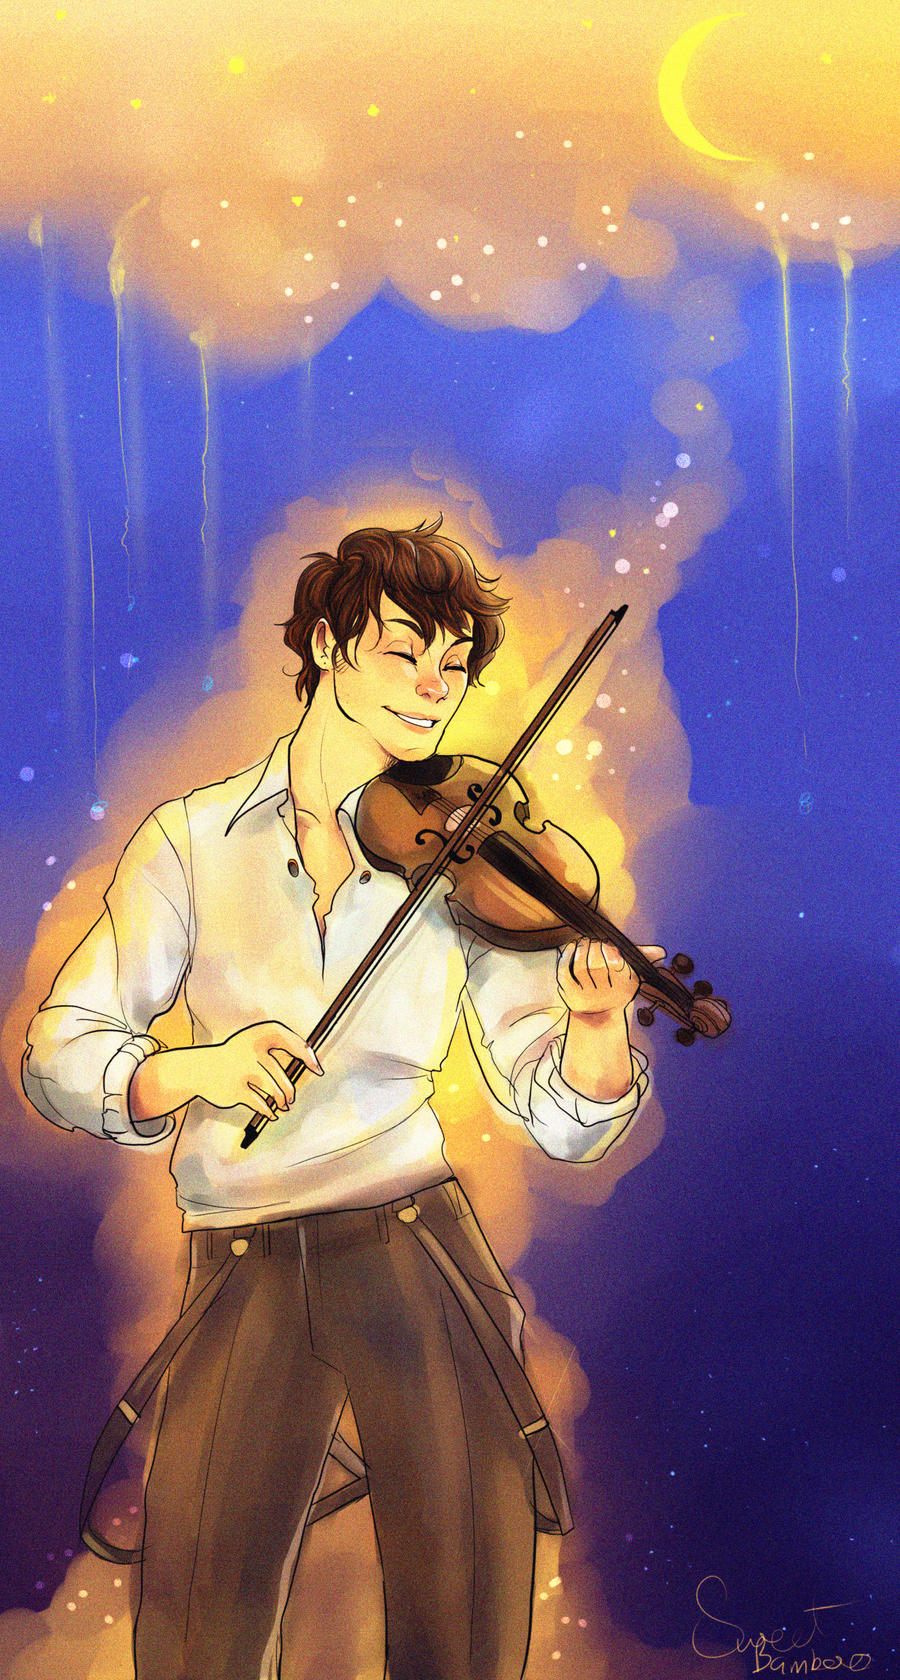 A fiddler for you by Xuiology